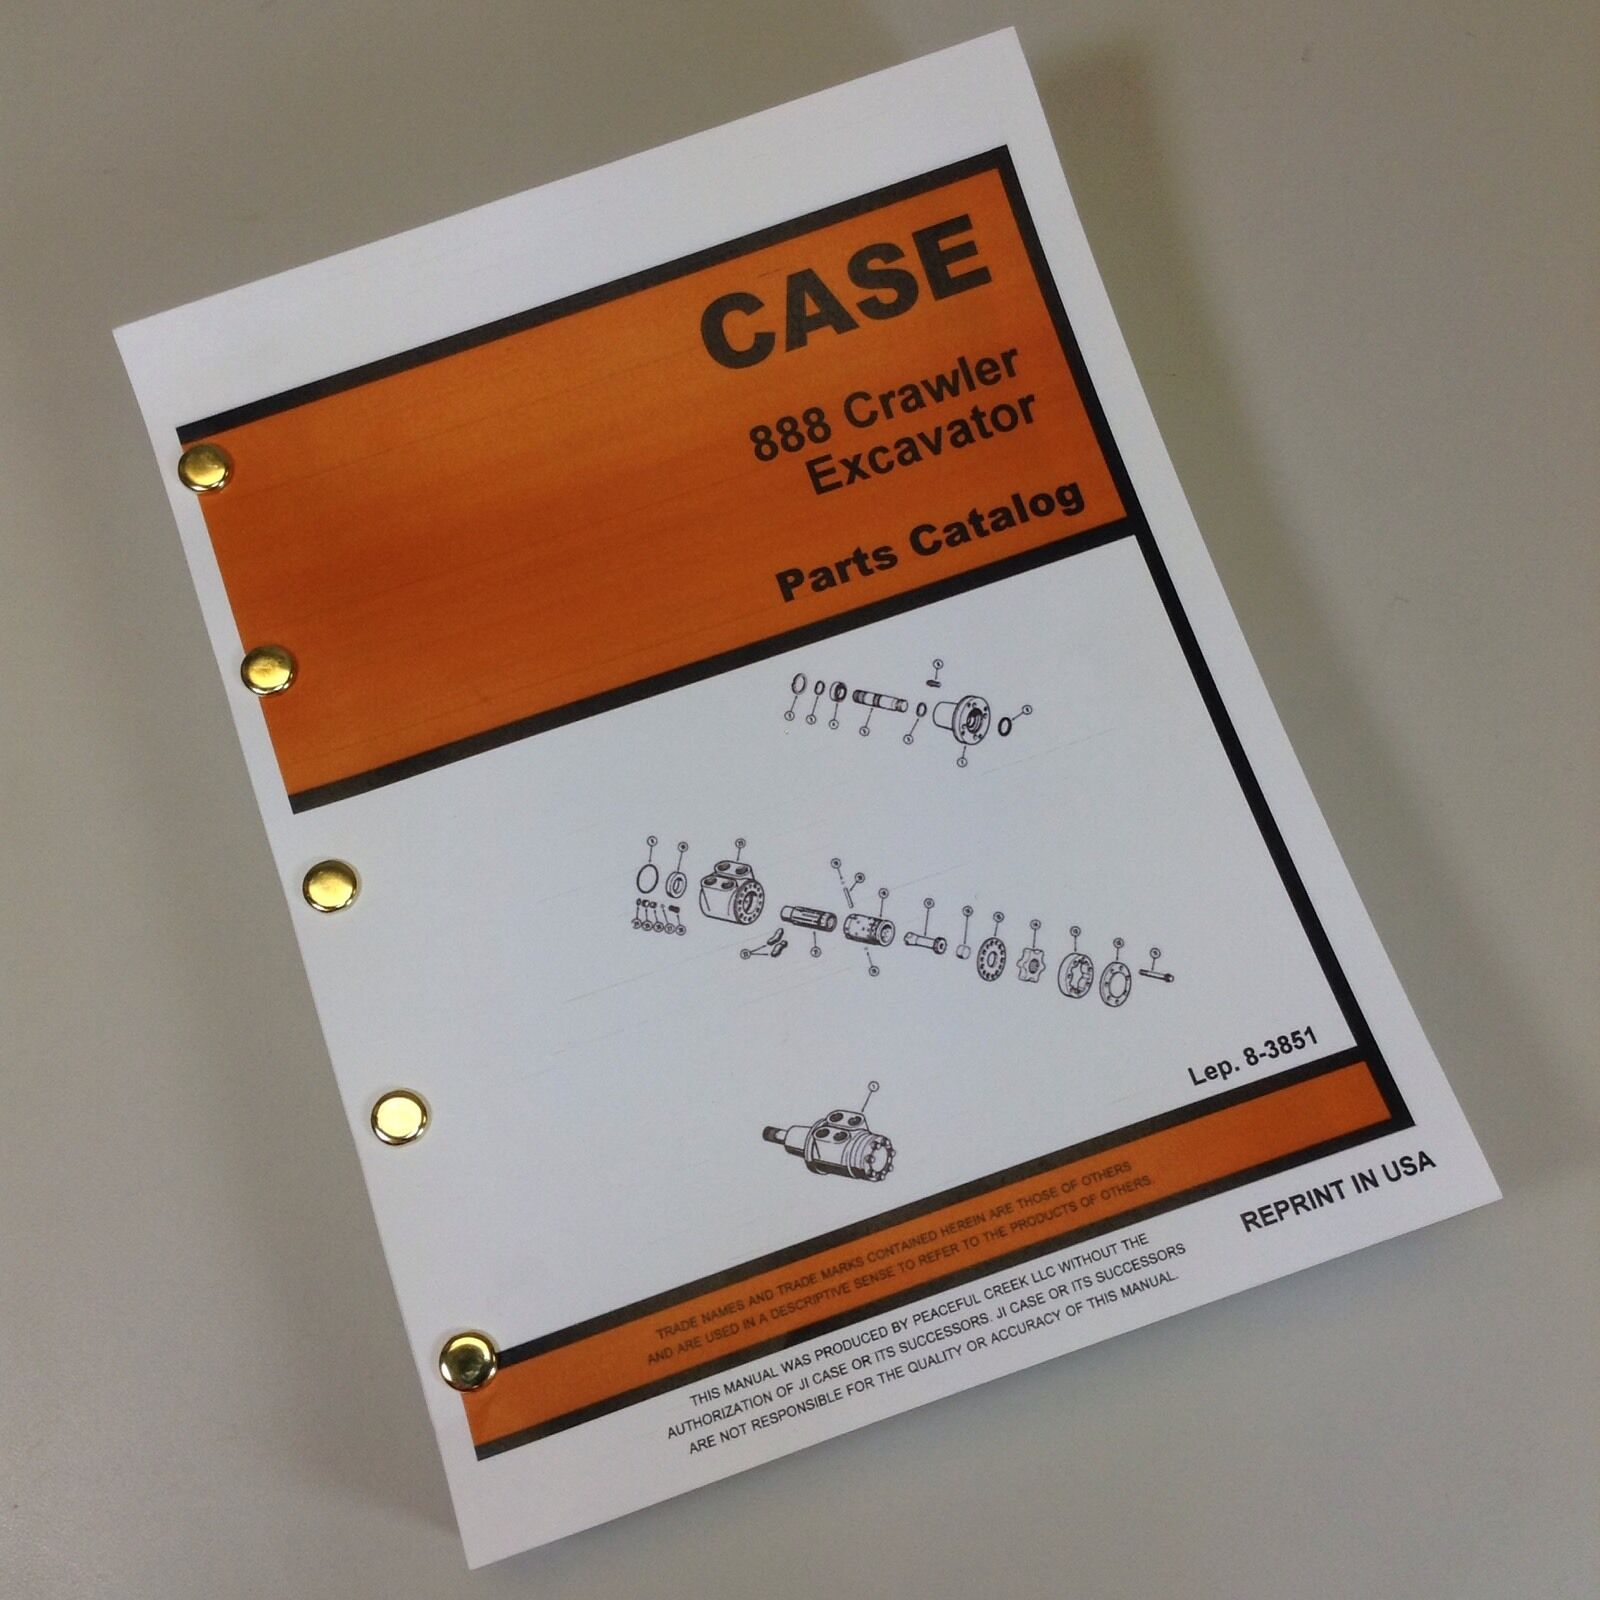 1 of 7FREE Shipping Case 888 Crawler Track Excavator Parts Manual Catalog  Exploded Views Assembly